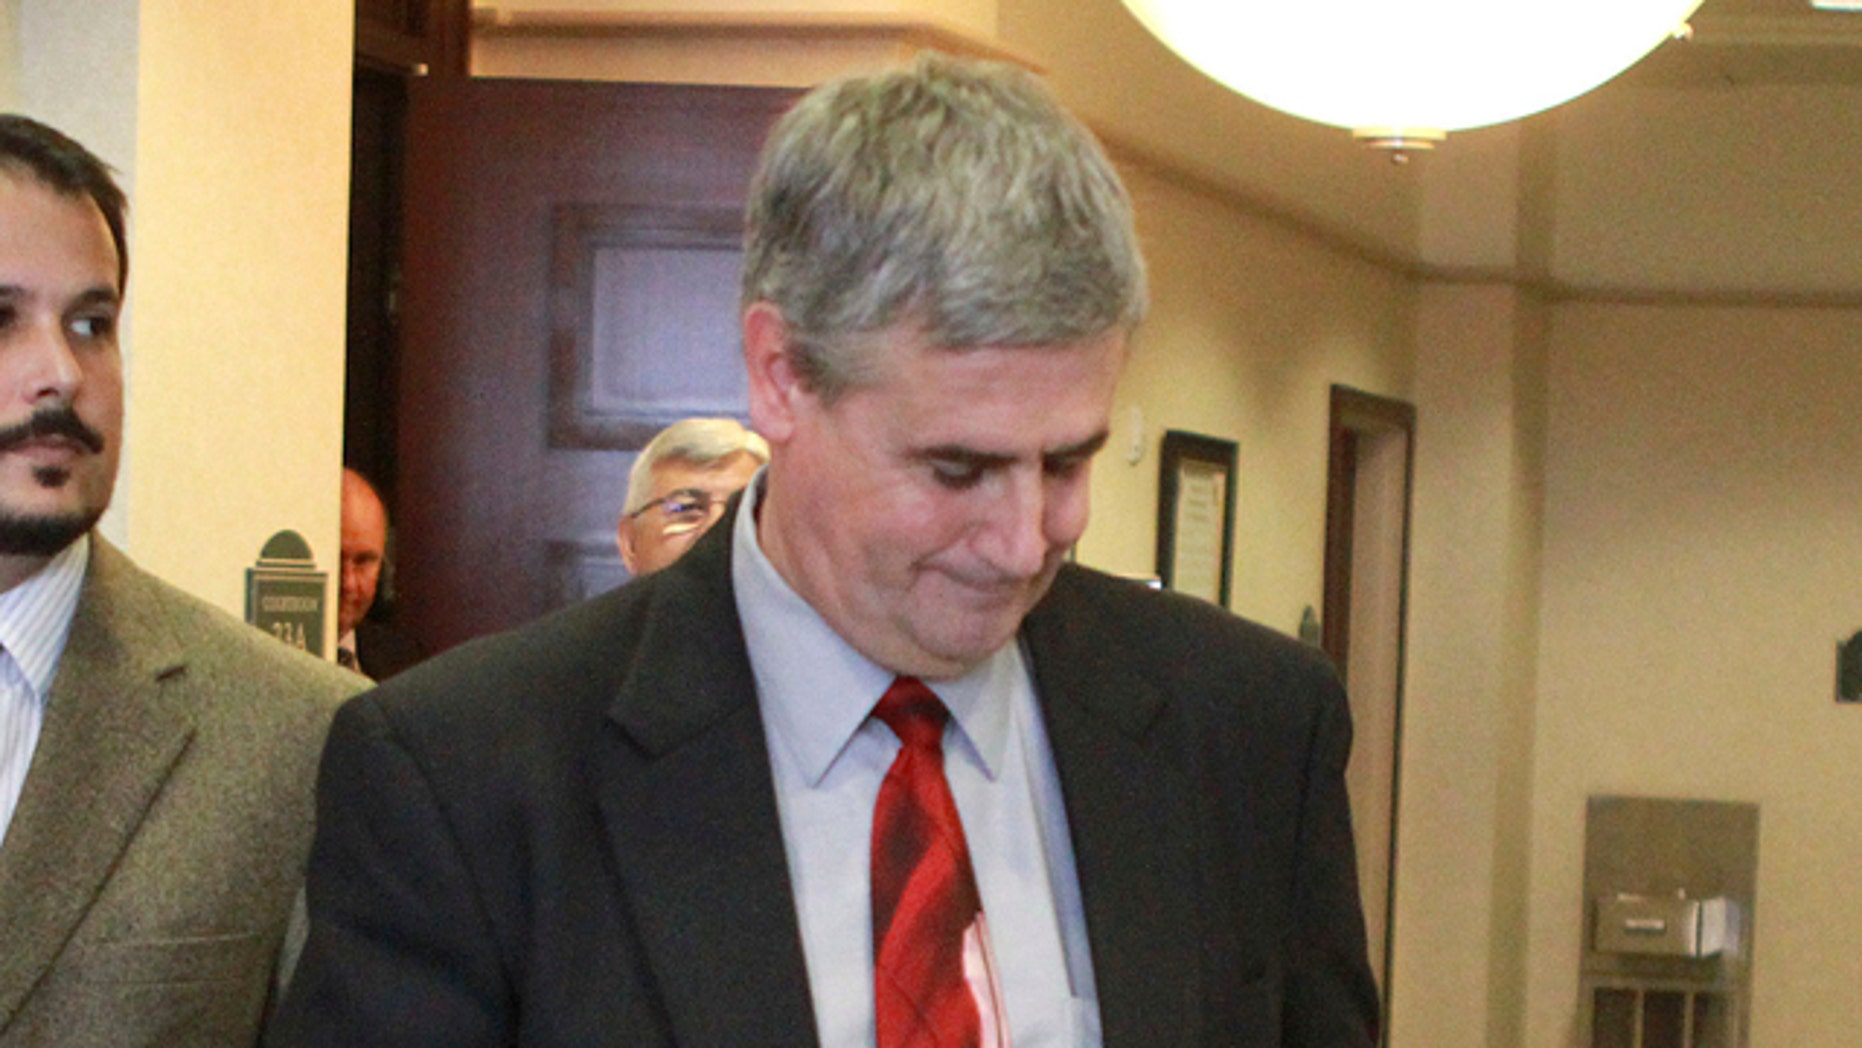 July 5: Prosecutor Jeff Ashton leaves the courtroom after Casey Anthony was found not guilty.